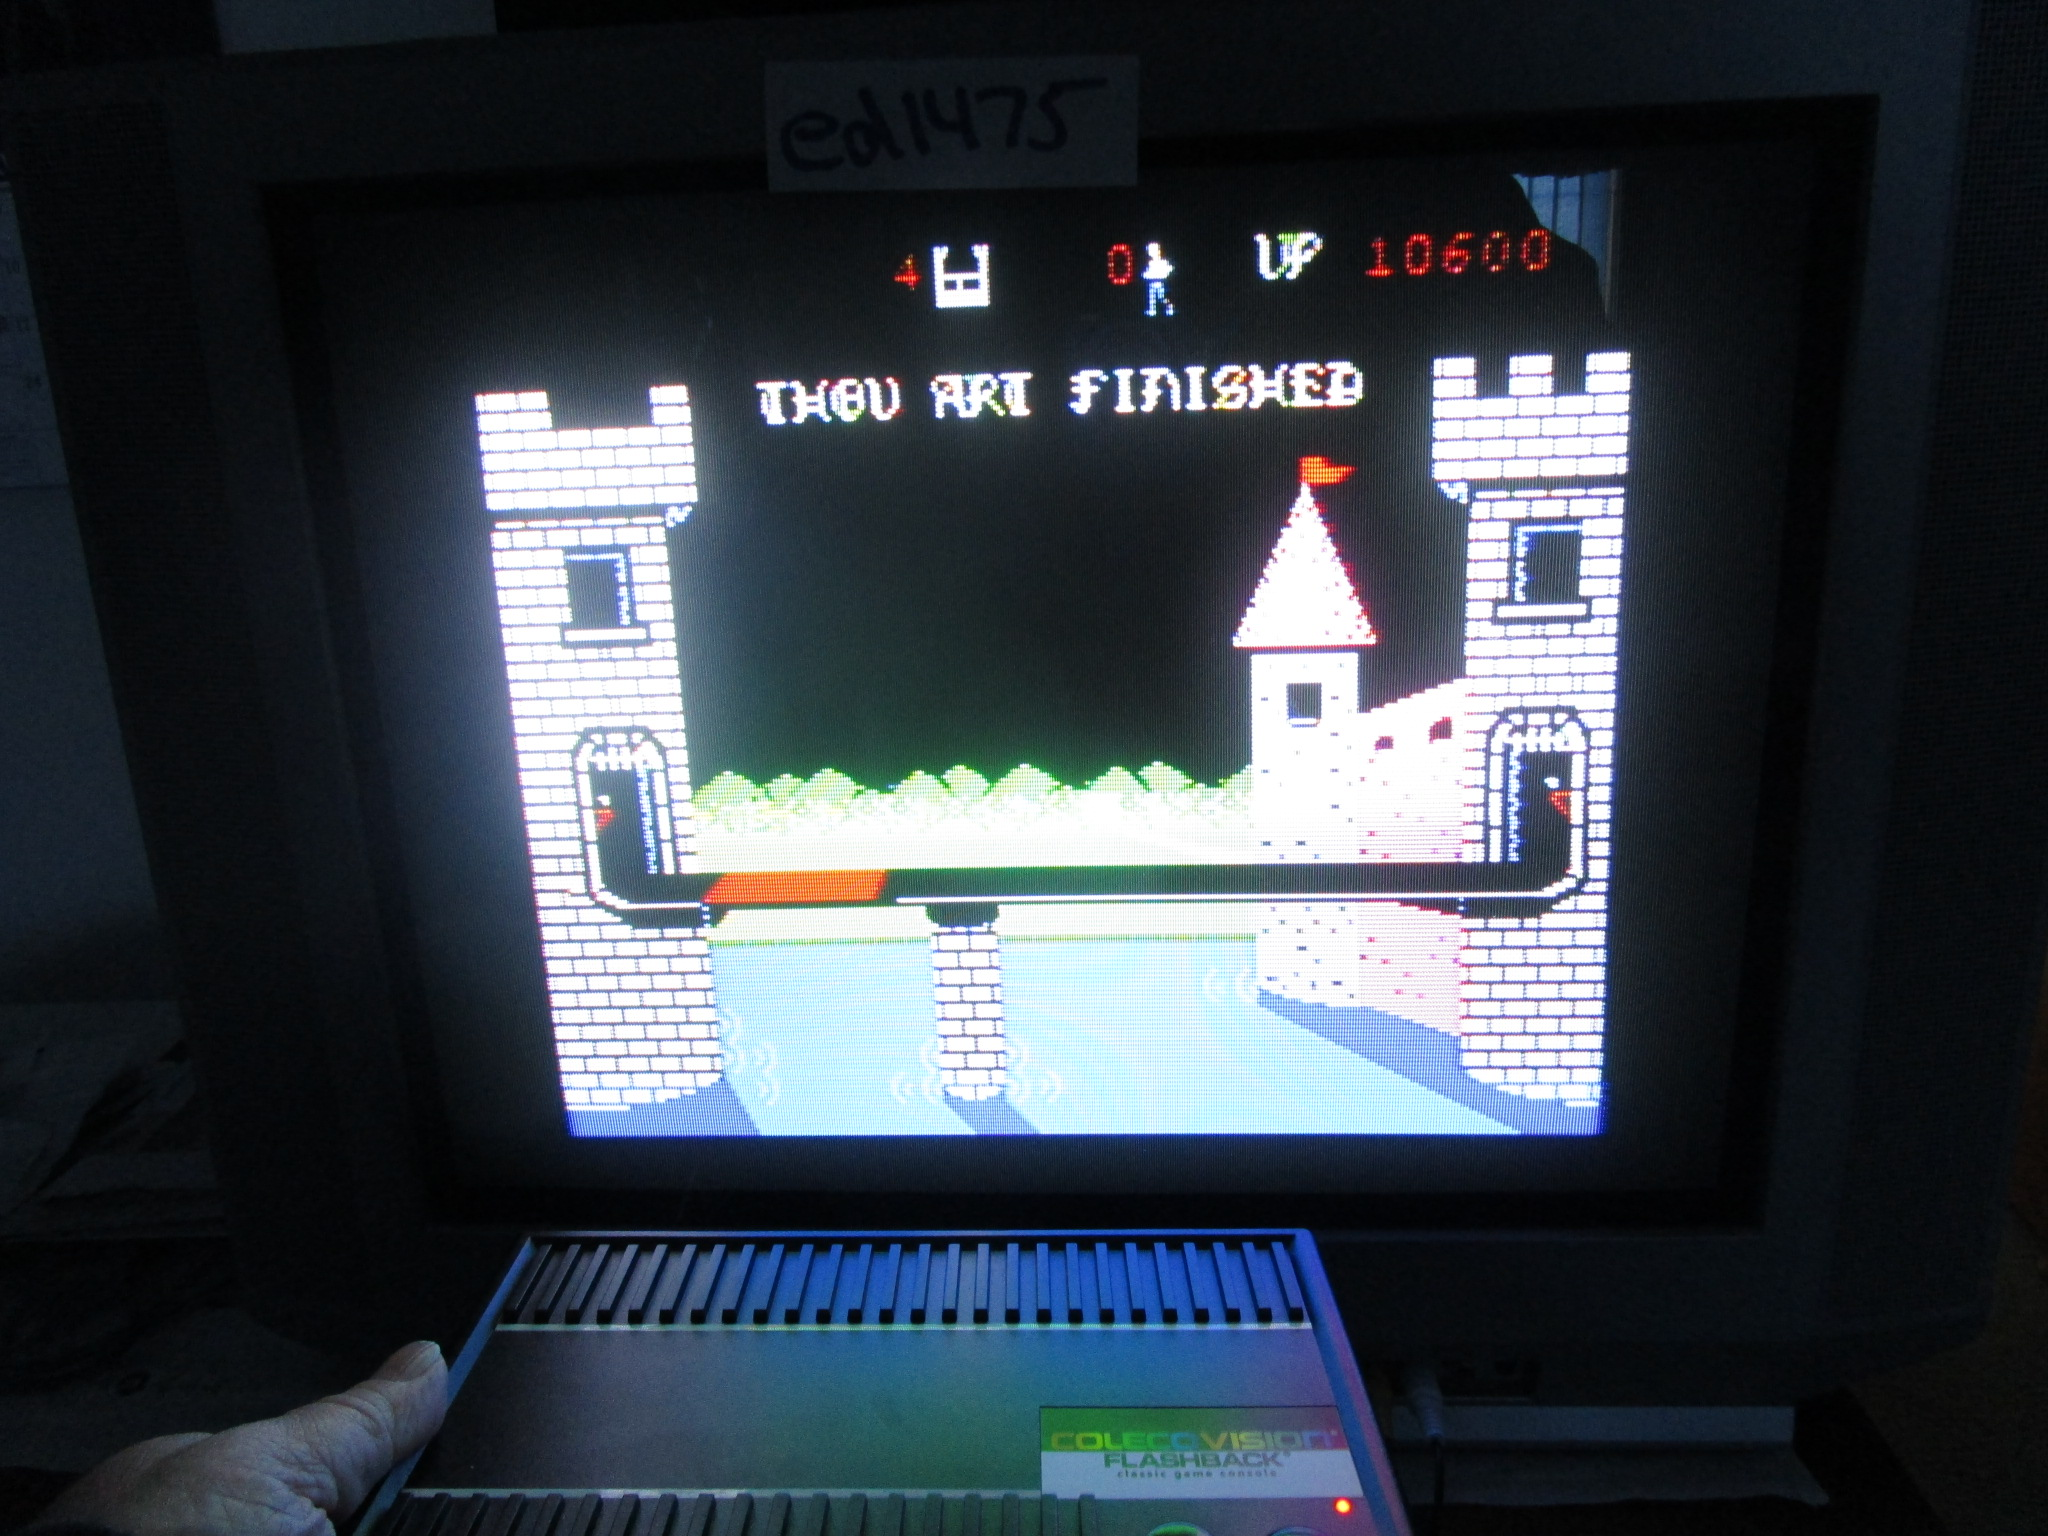 ed1475: Dragonfire (Colecovision Flashback) 10,600 points on 2015-02-13 23:58:41